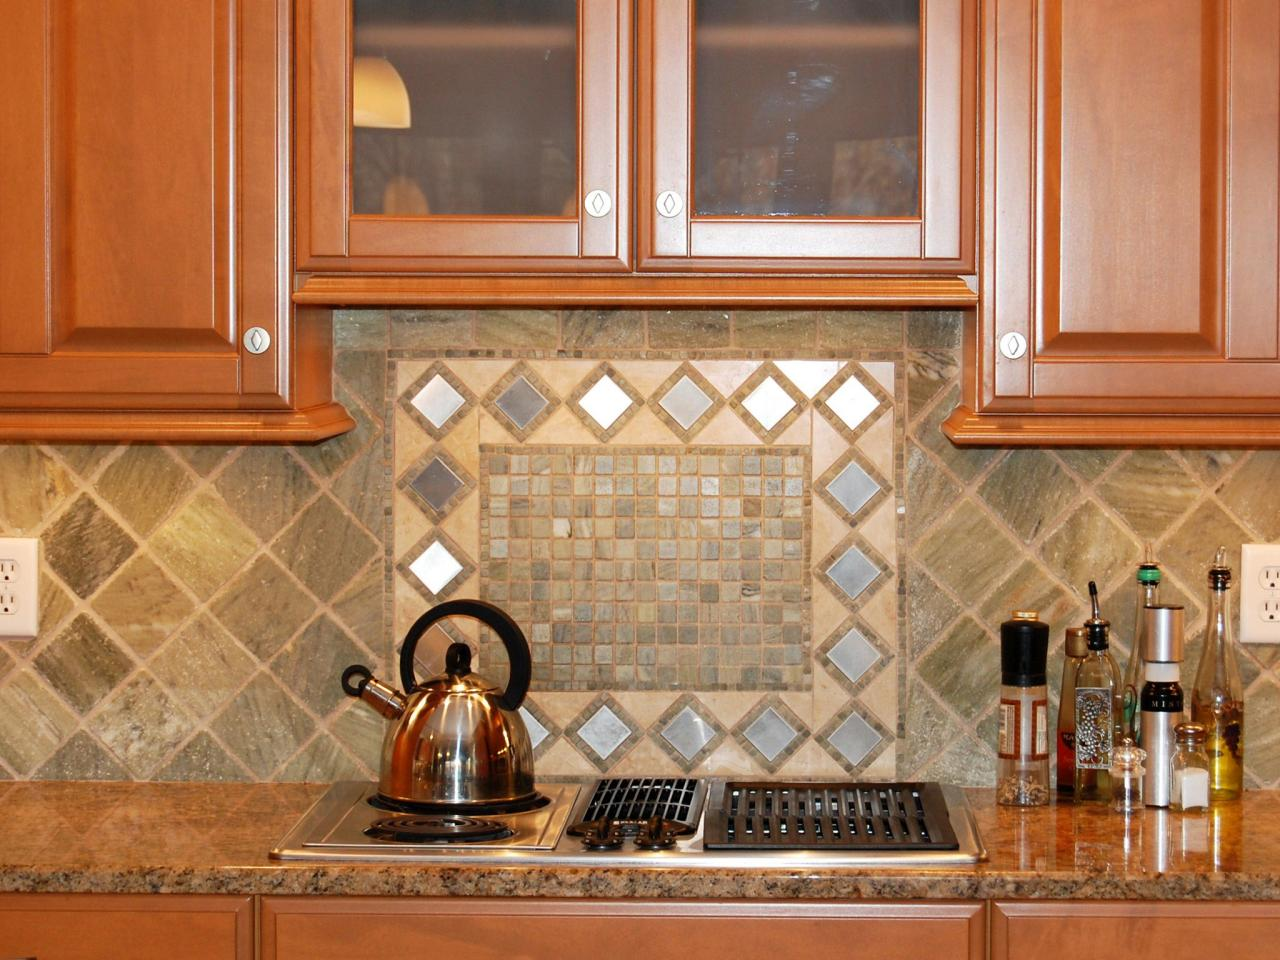 backsplash gallery limestone kitchen backsplash ideas kitchen backsplash tile design ideas - Kitchen Tile Design Ideas